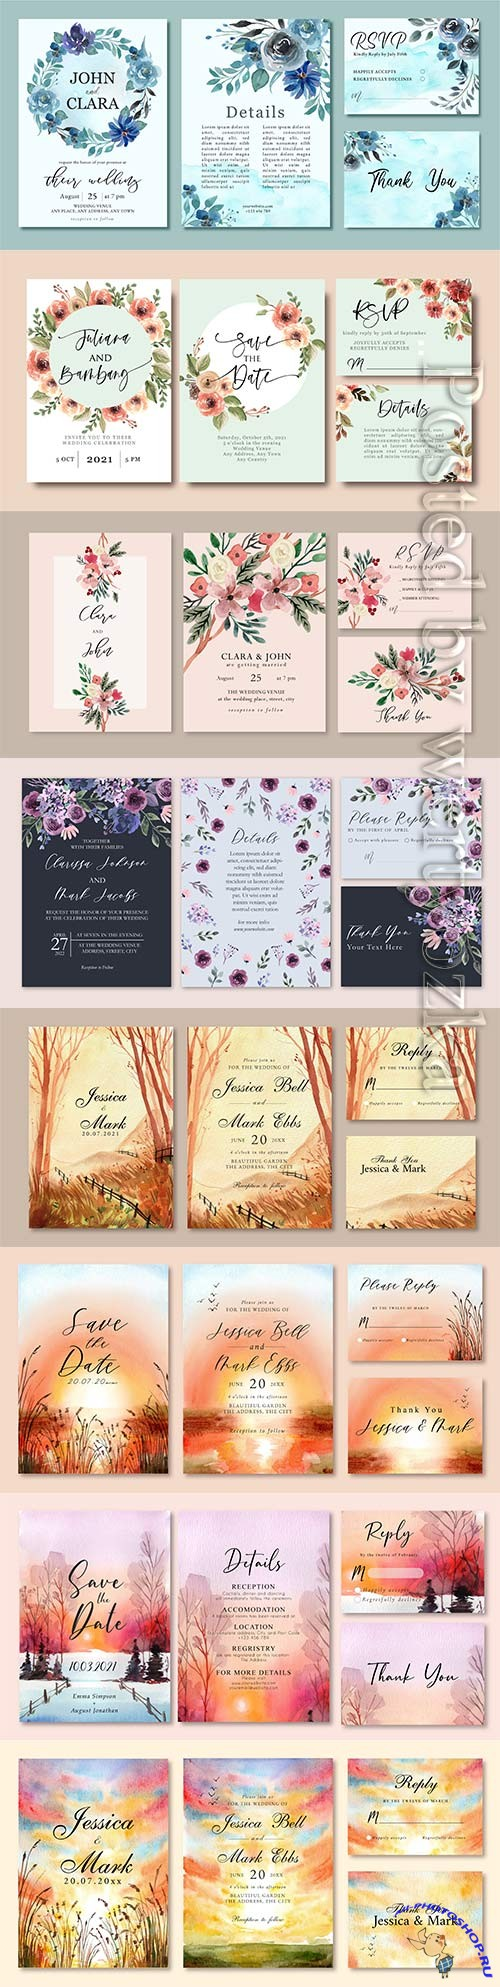 Wedding invitation card design with flower